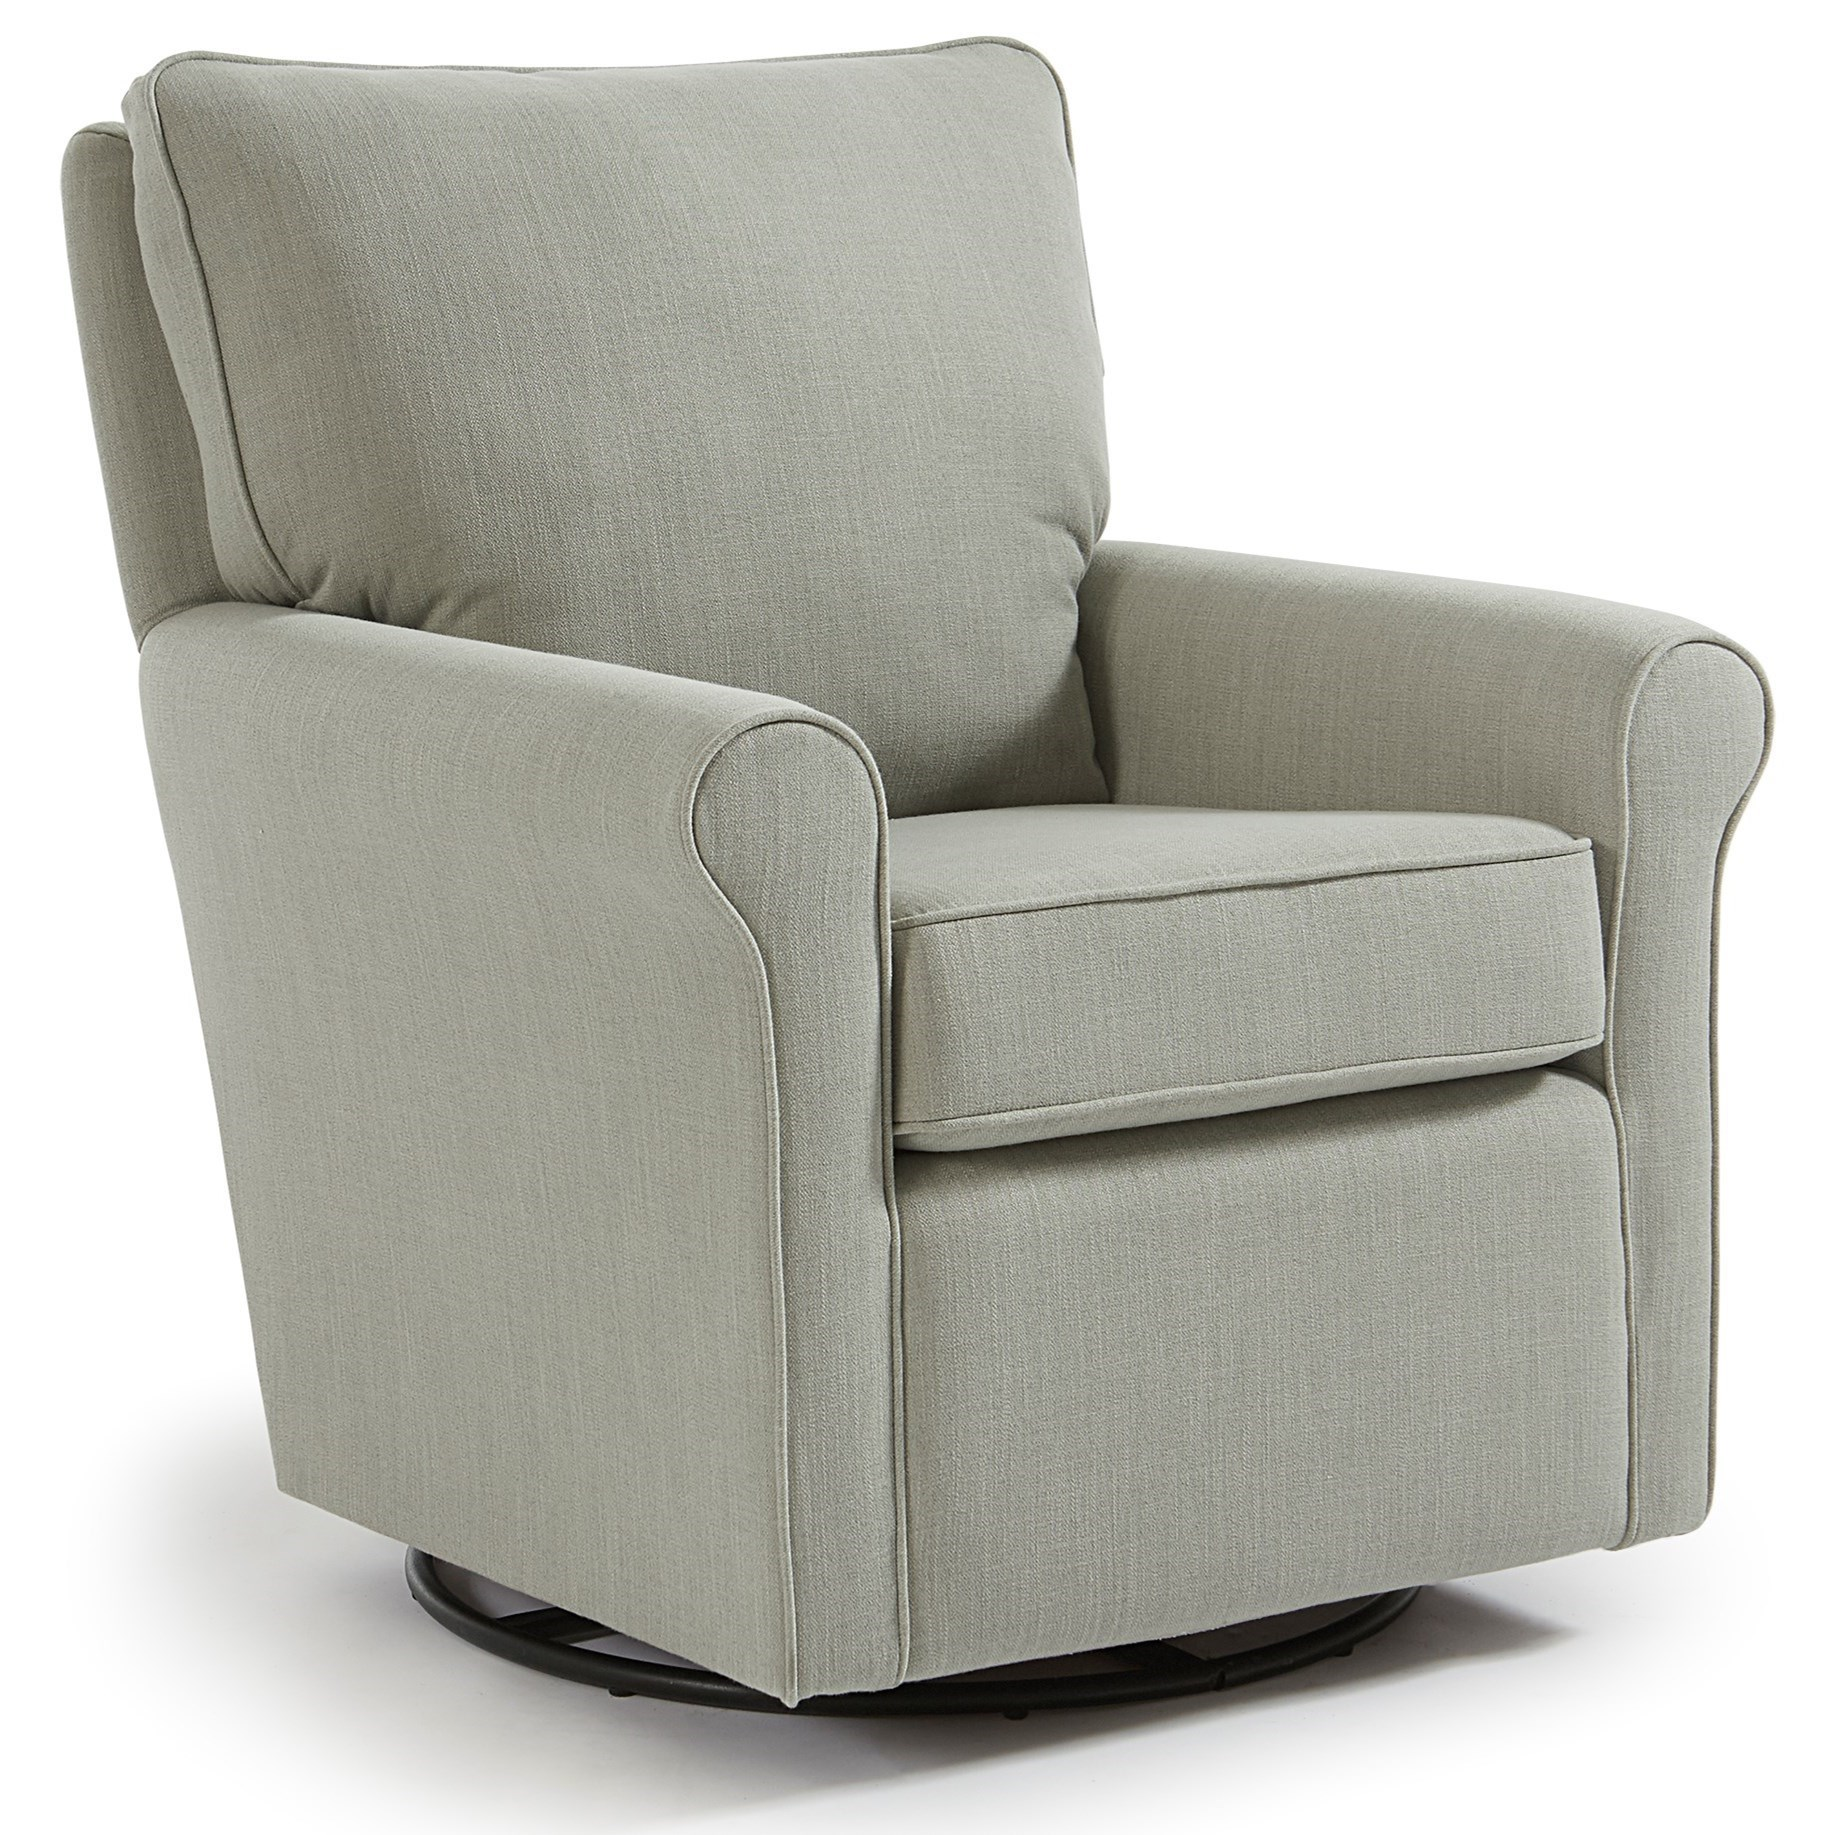 Storytime Chair Kacey Casual Swivel Glider Chair By Best Home Furnishings At Wayside Furniture